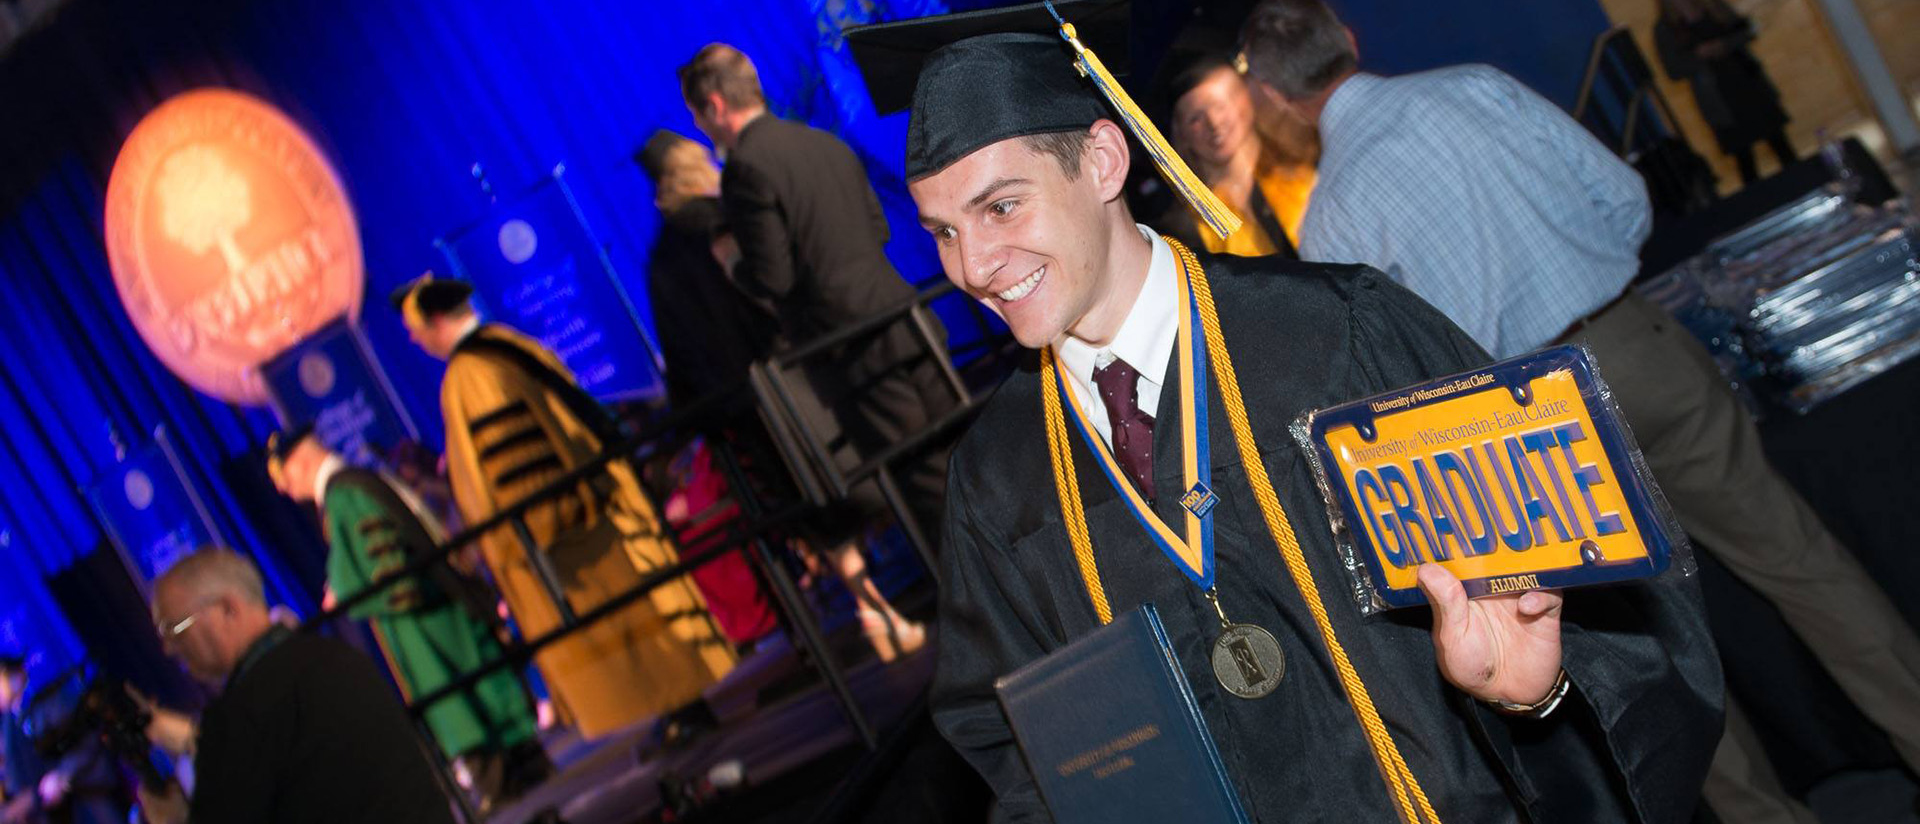 May 2017 graduate at commencement